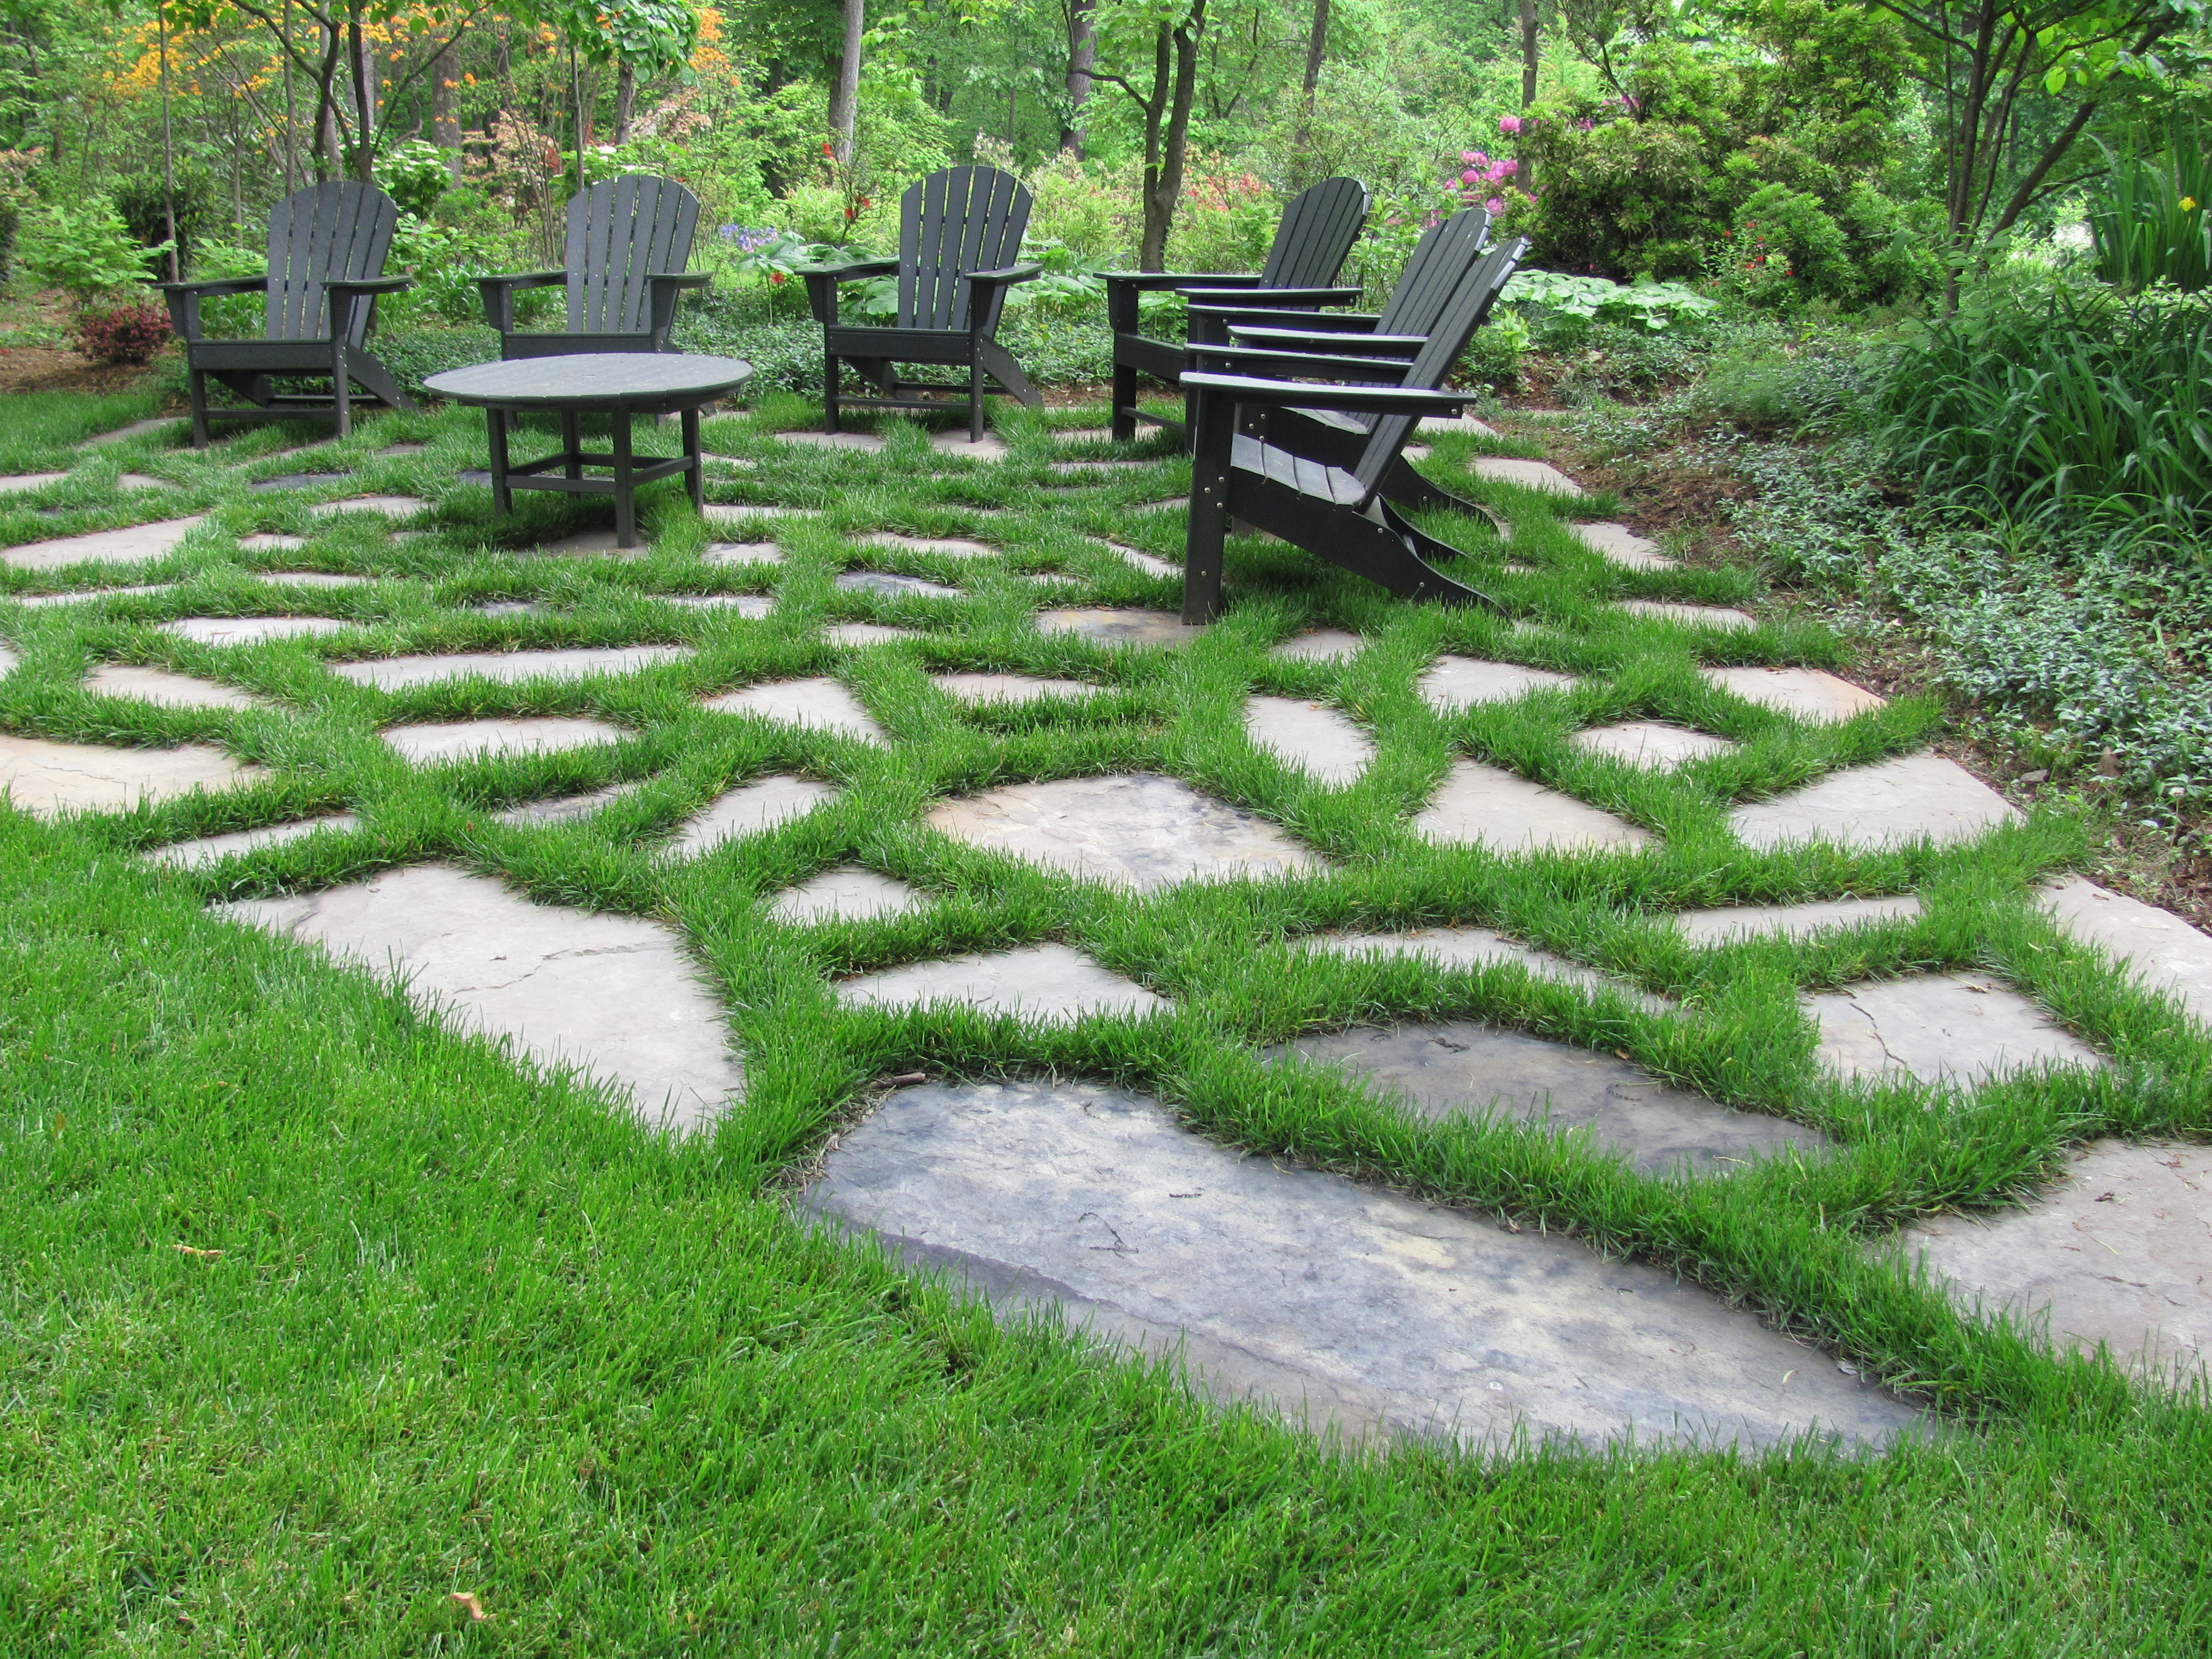 Charming Stone Garden Photos - Landscaping Ideas for Backyard ...